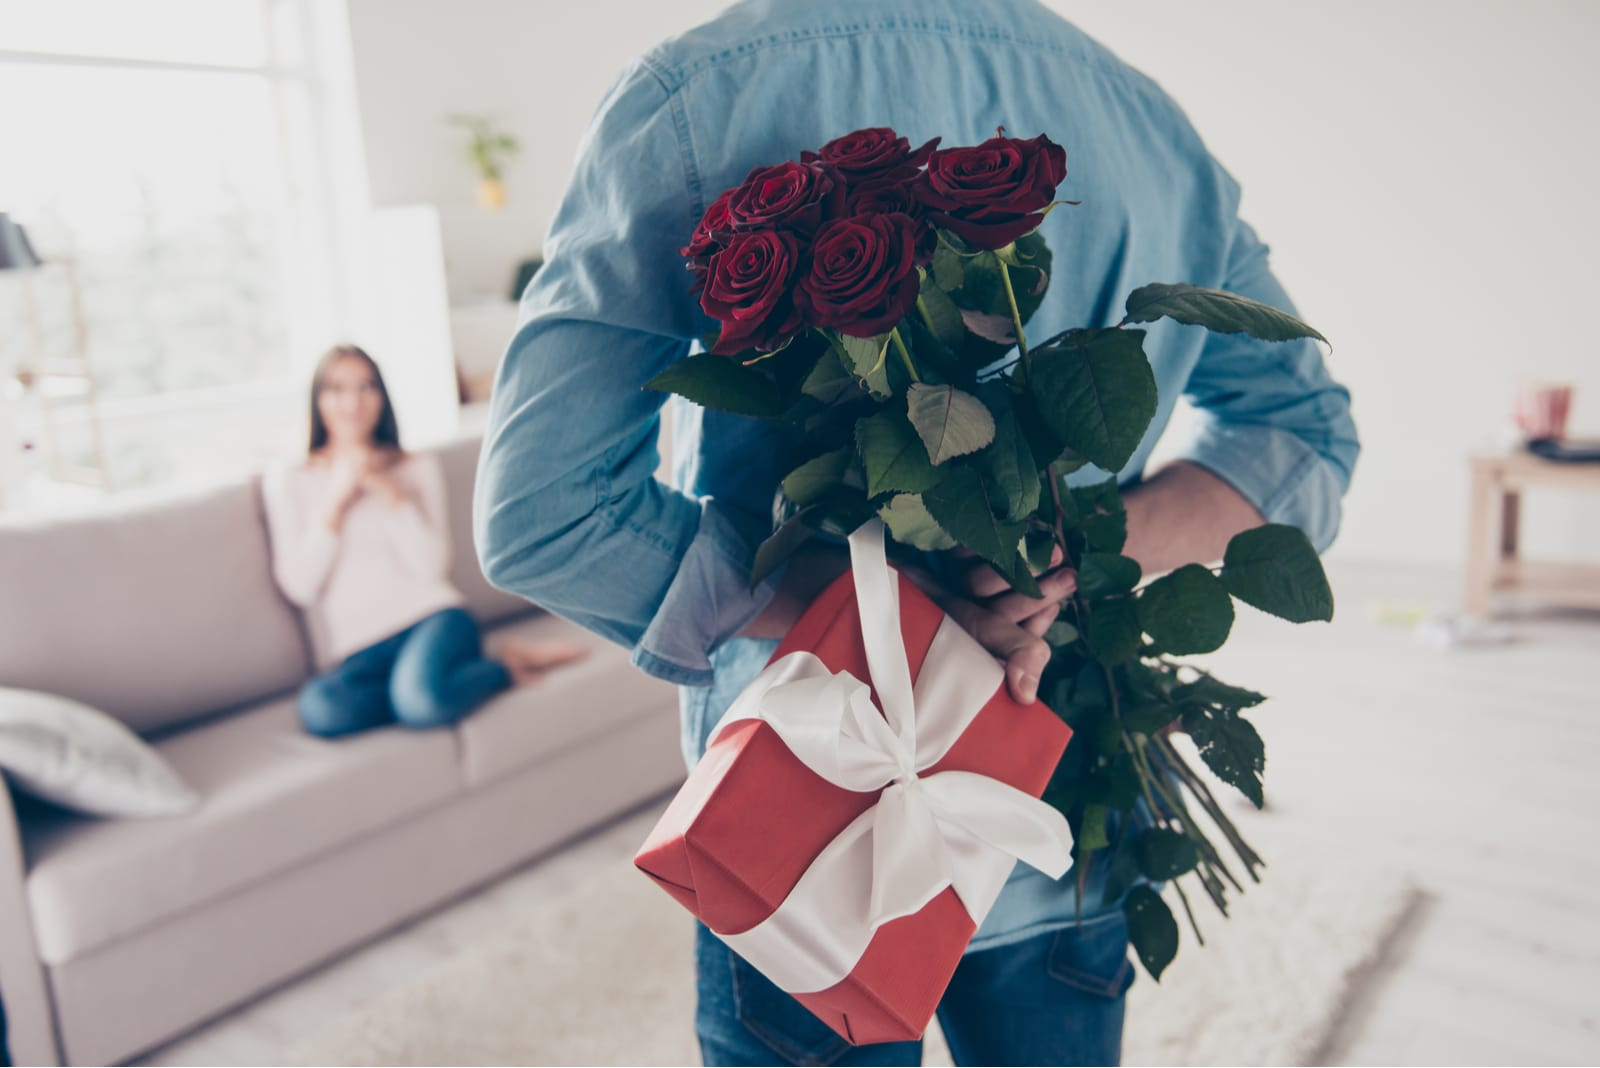 If You Want To Keep Her – Treat Her Like You're Still Trying To Win Her